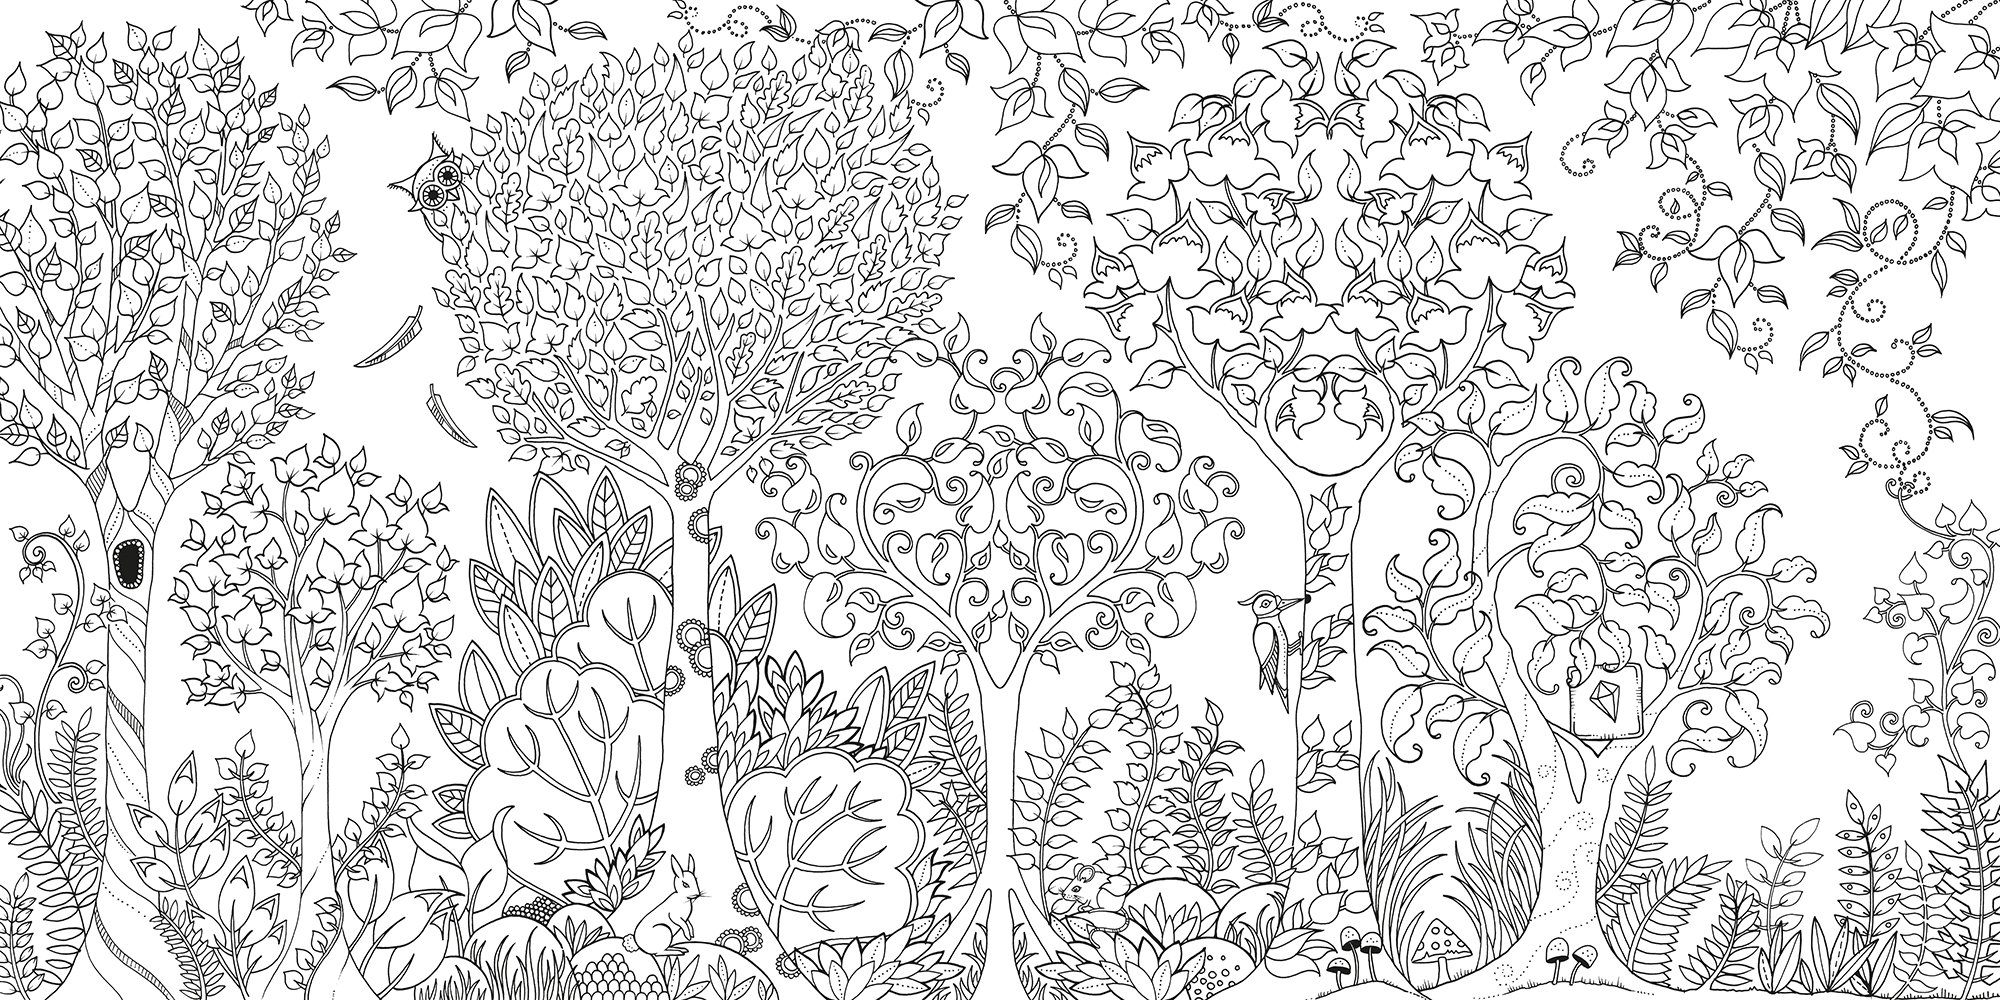 Forest Coloring Pages – coloring.rocks! | 1000x2000